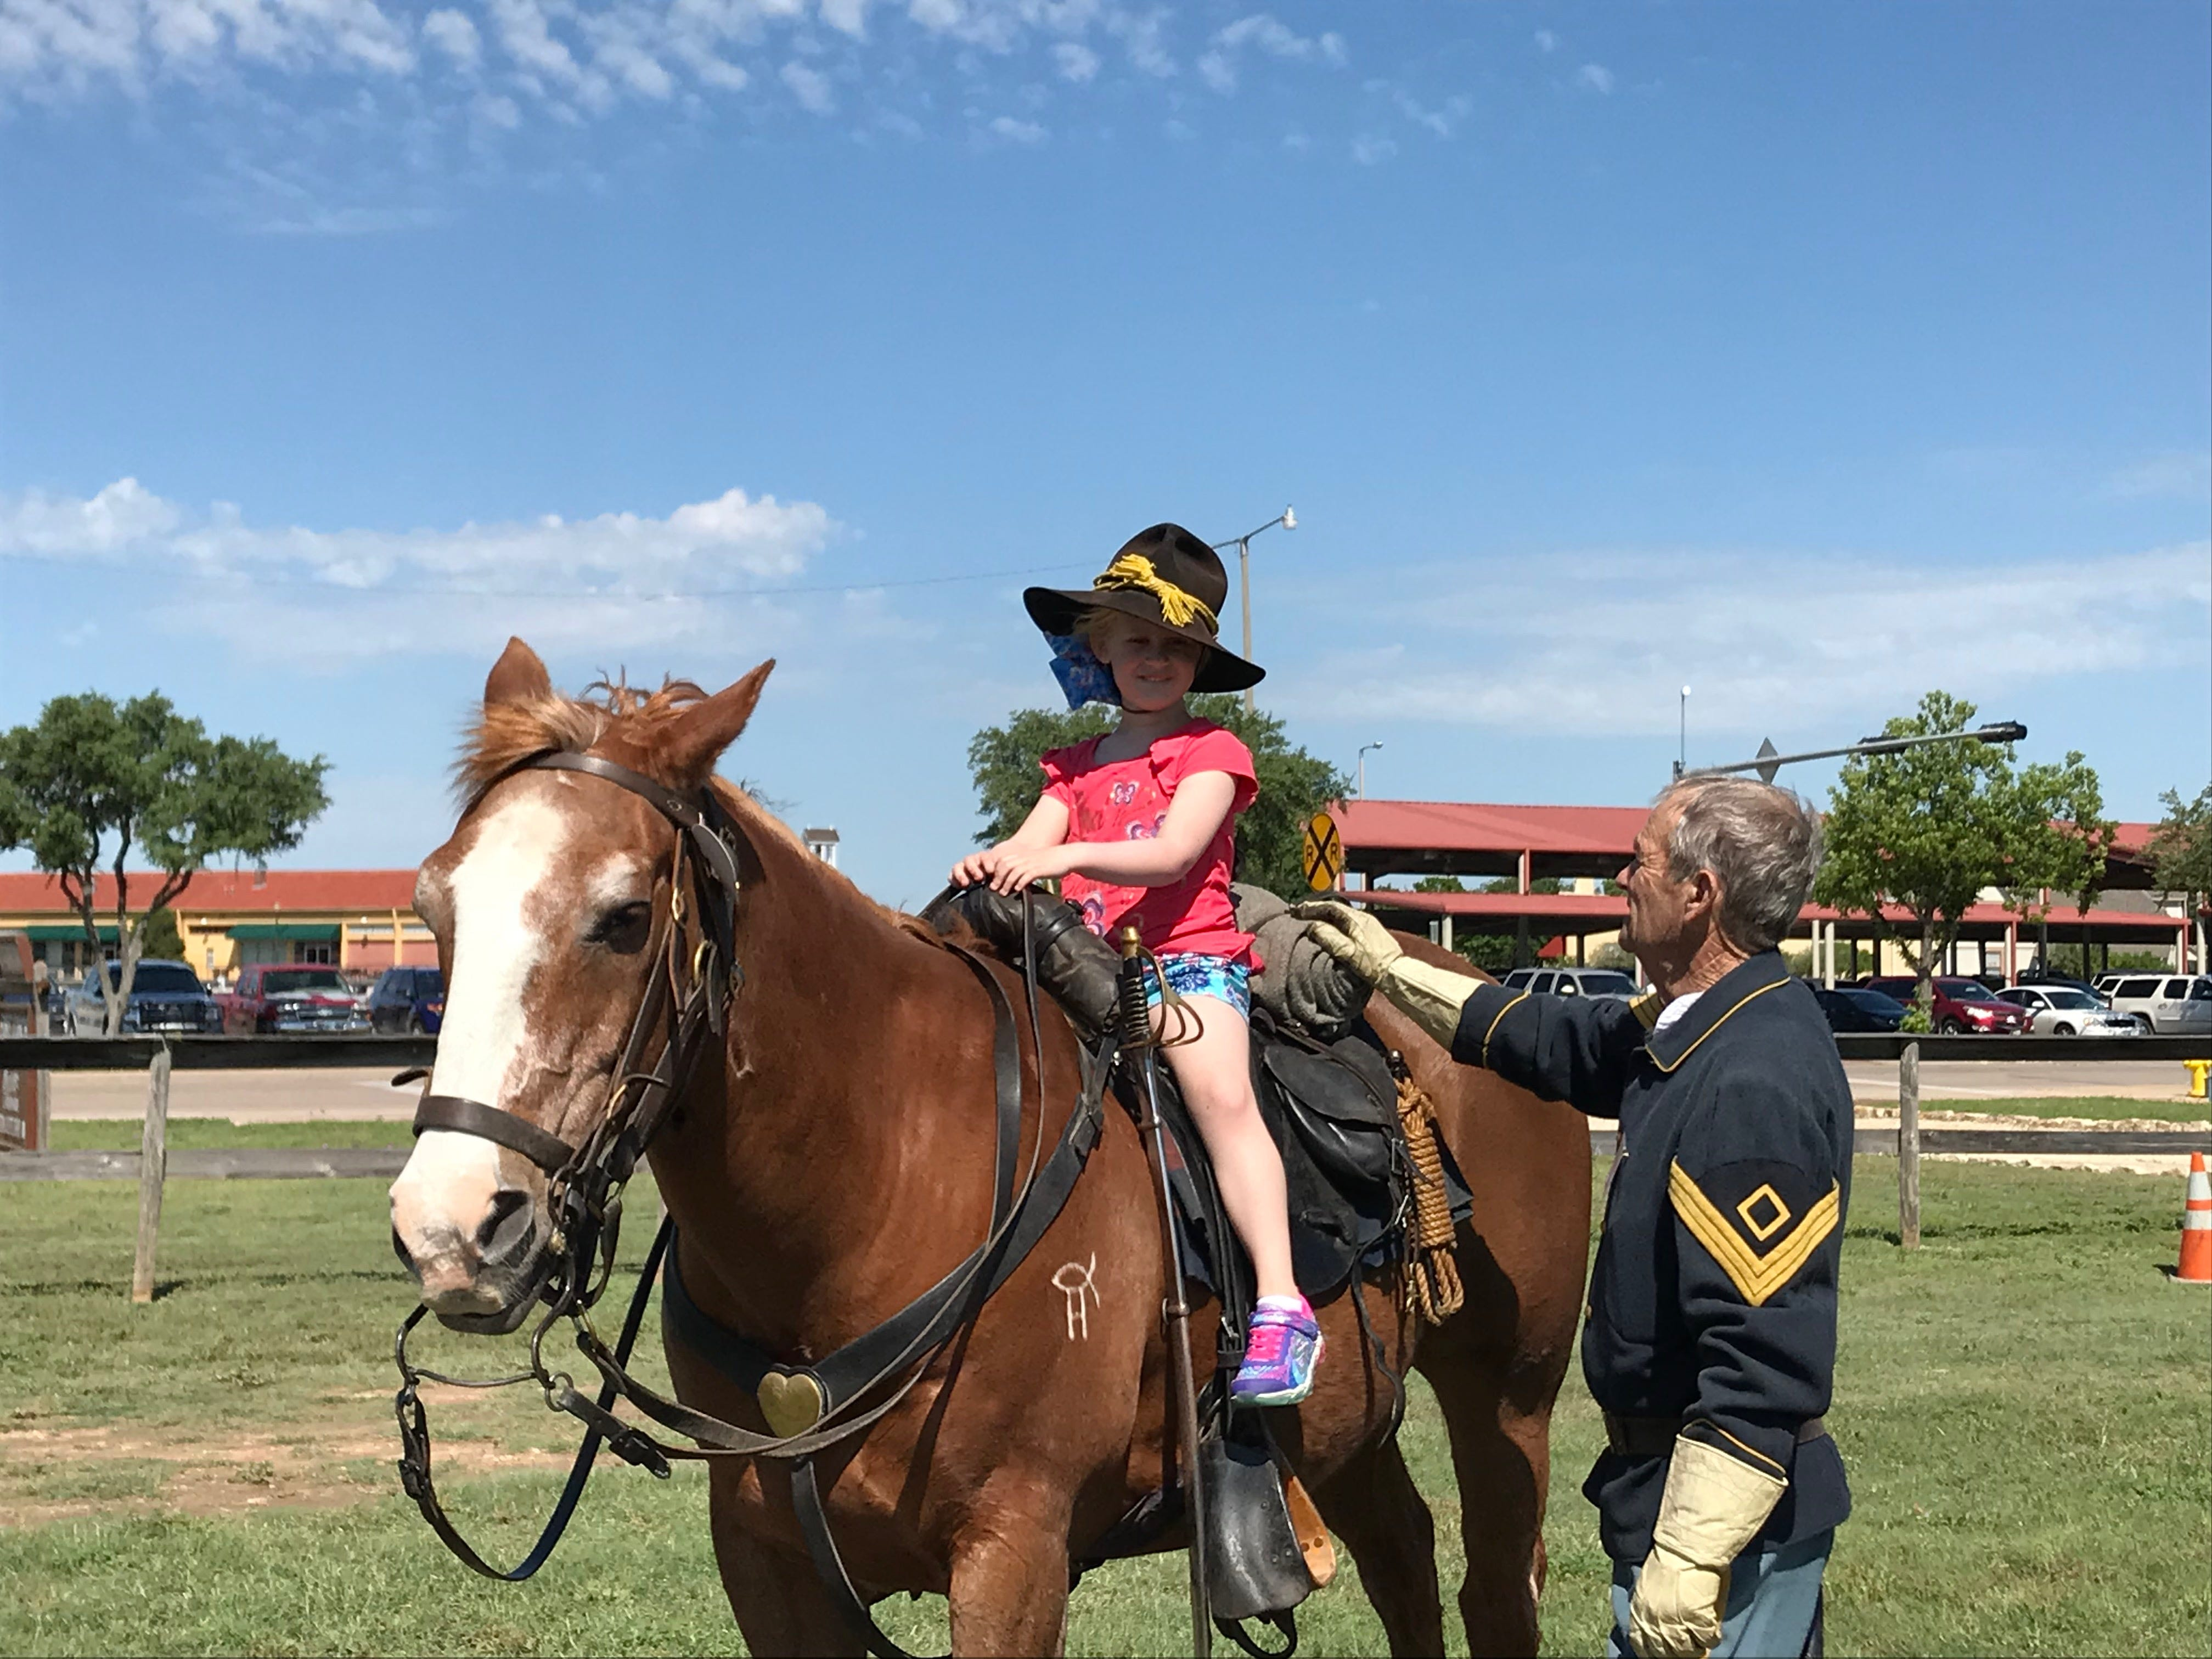 Emma Carr, 6, smiles at Sgt. Ron Perry, from Ft. Concho's Company D, at the Regional Cavalry Competition at Fort Concho, 630 S. Oakes St. on Friday, April 26, 2019.